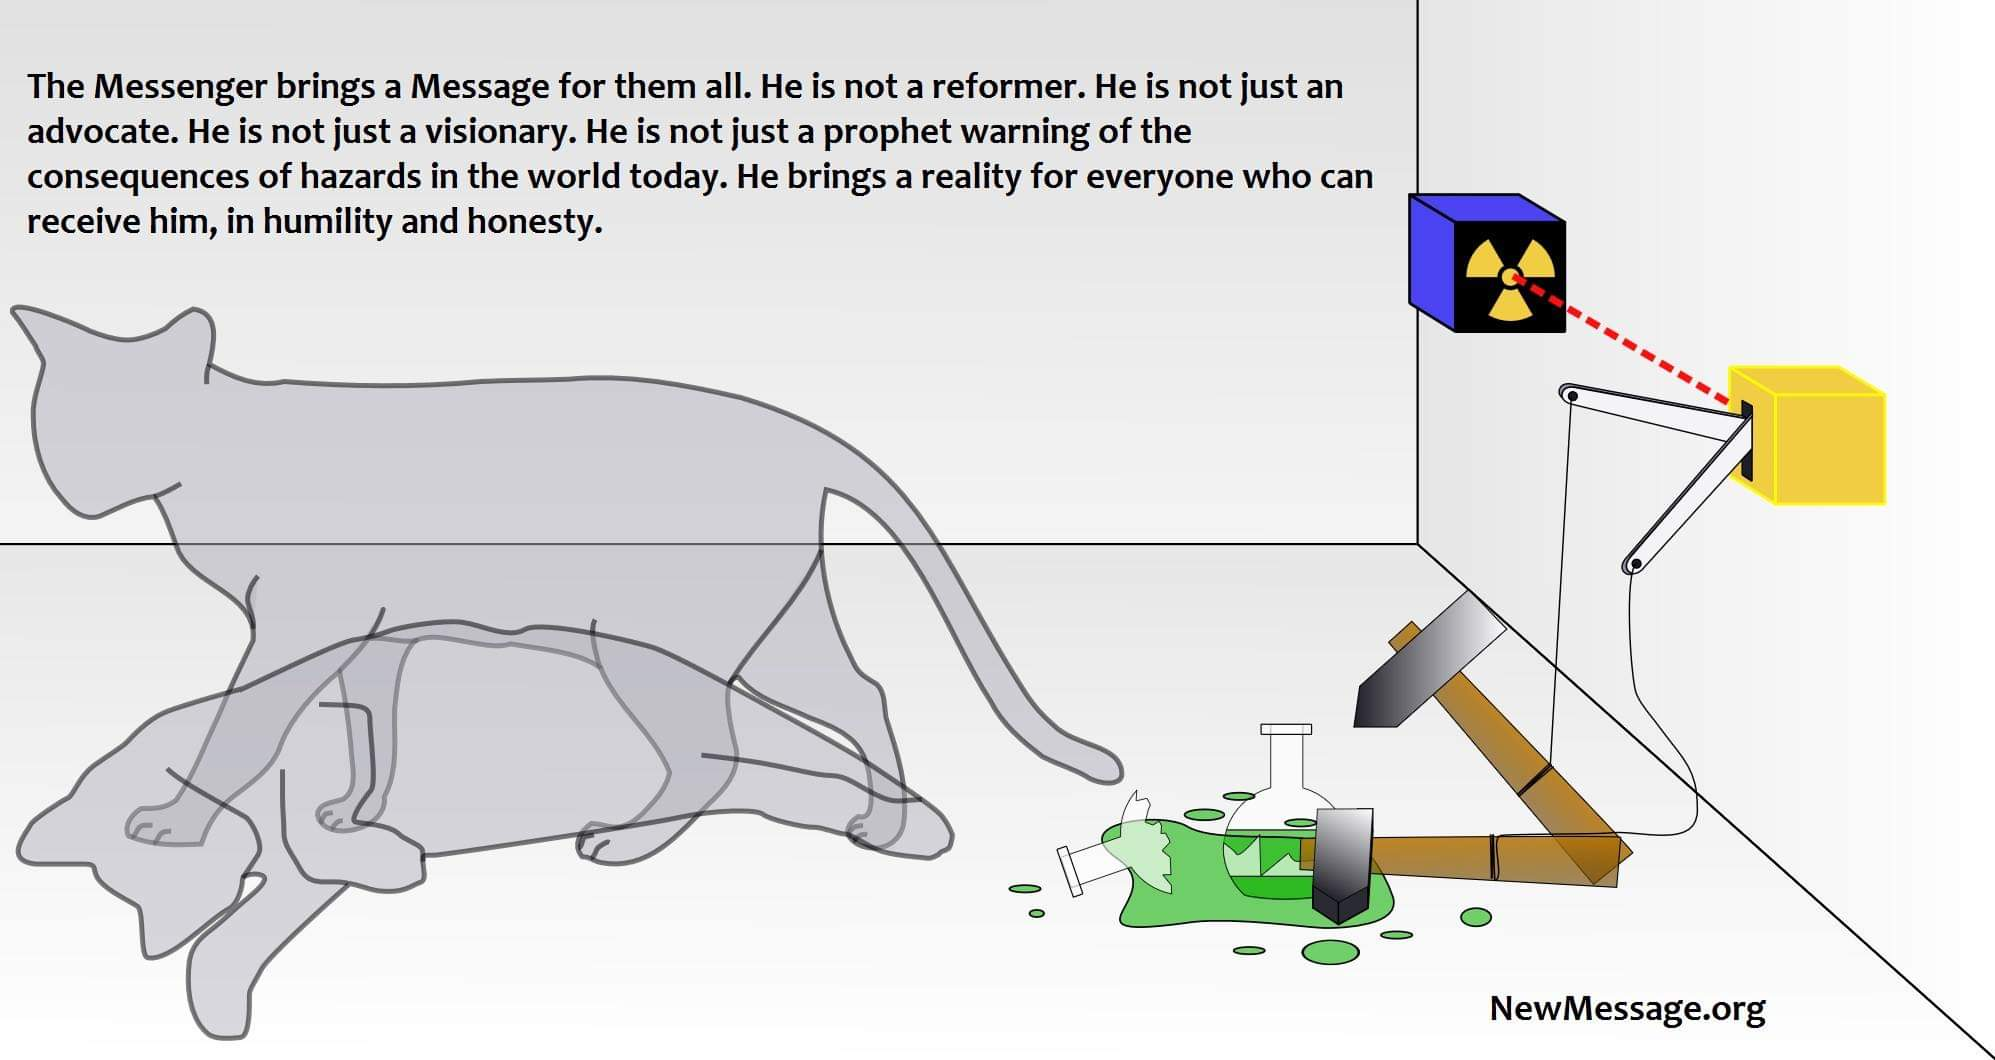 Schrodinger's cat and the Messenger. A new reality doesn't happen every day